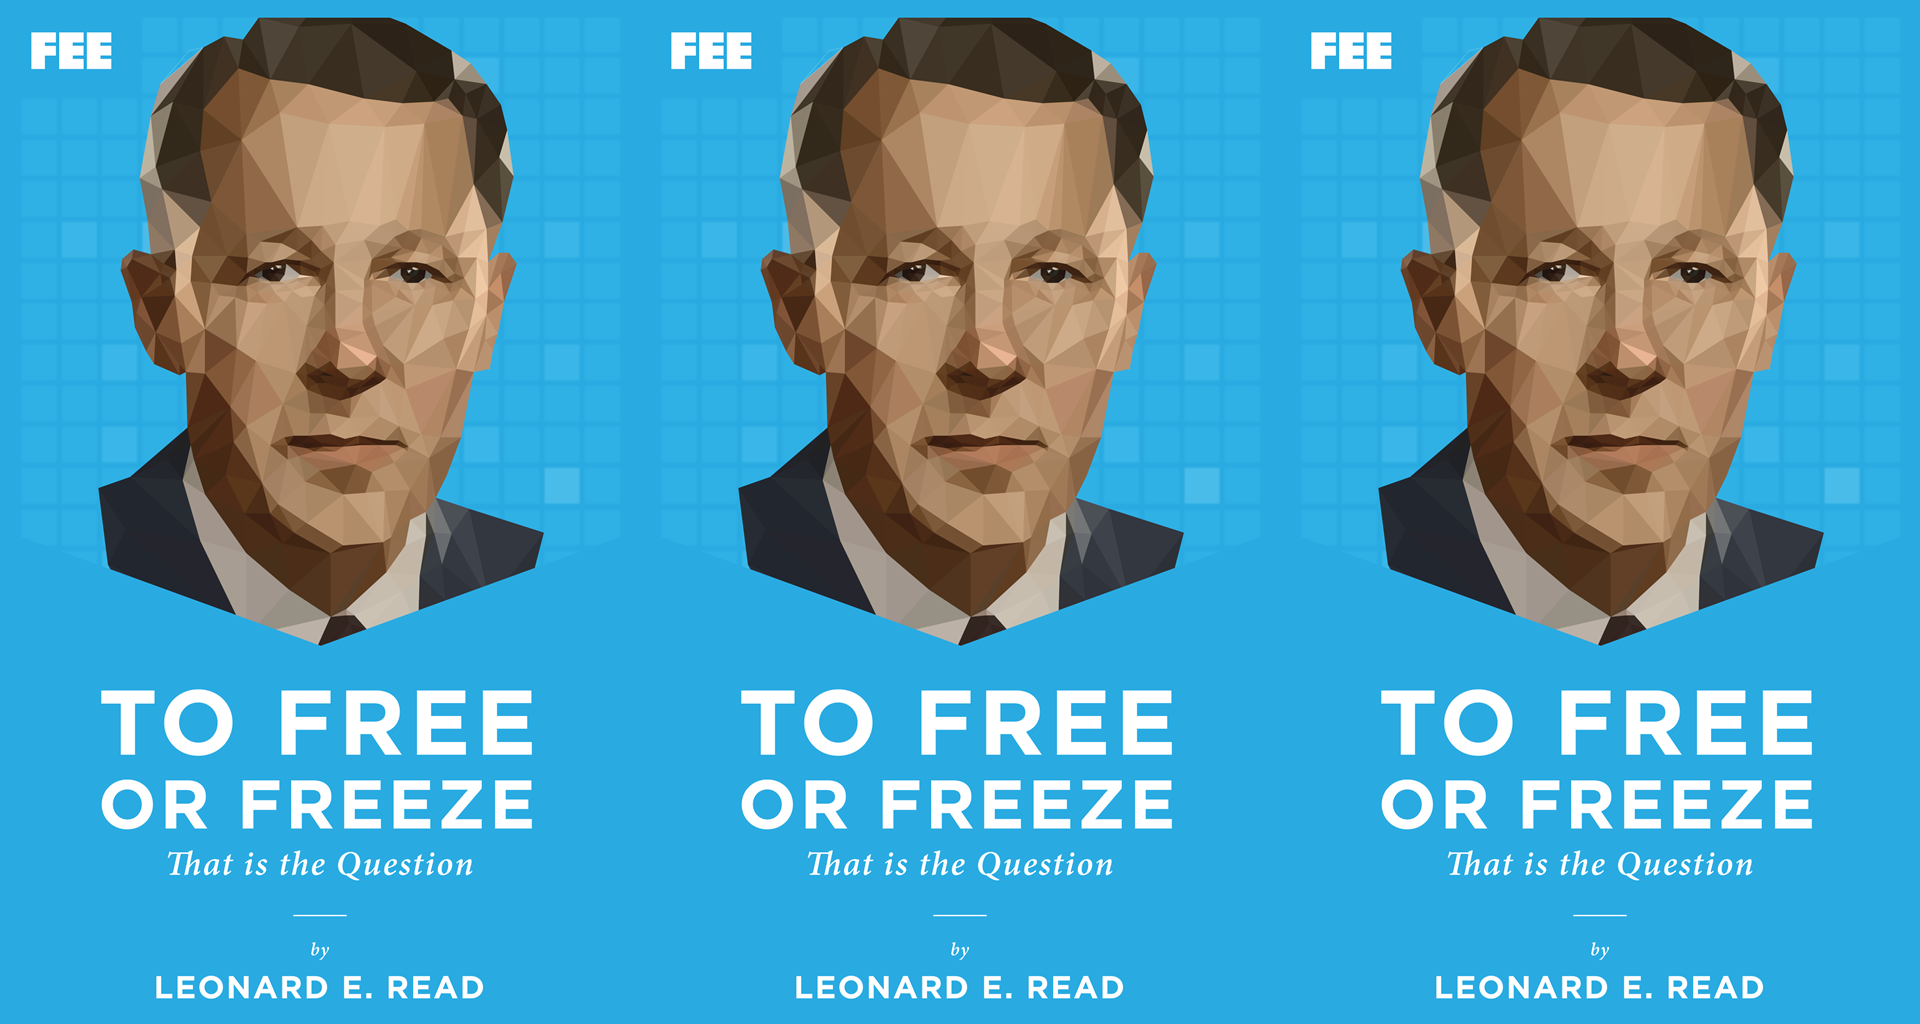 To Free or Freeze - Foundation for Economic Education